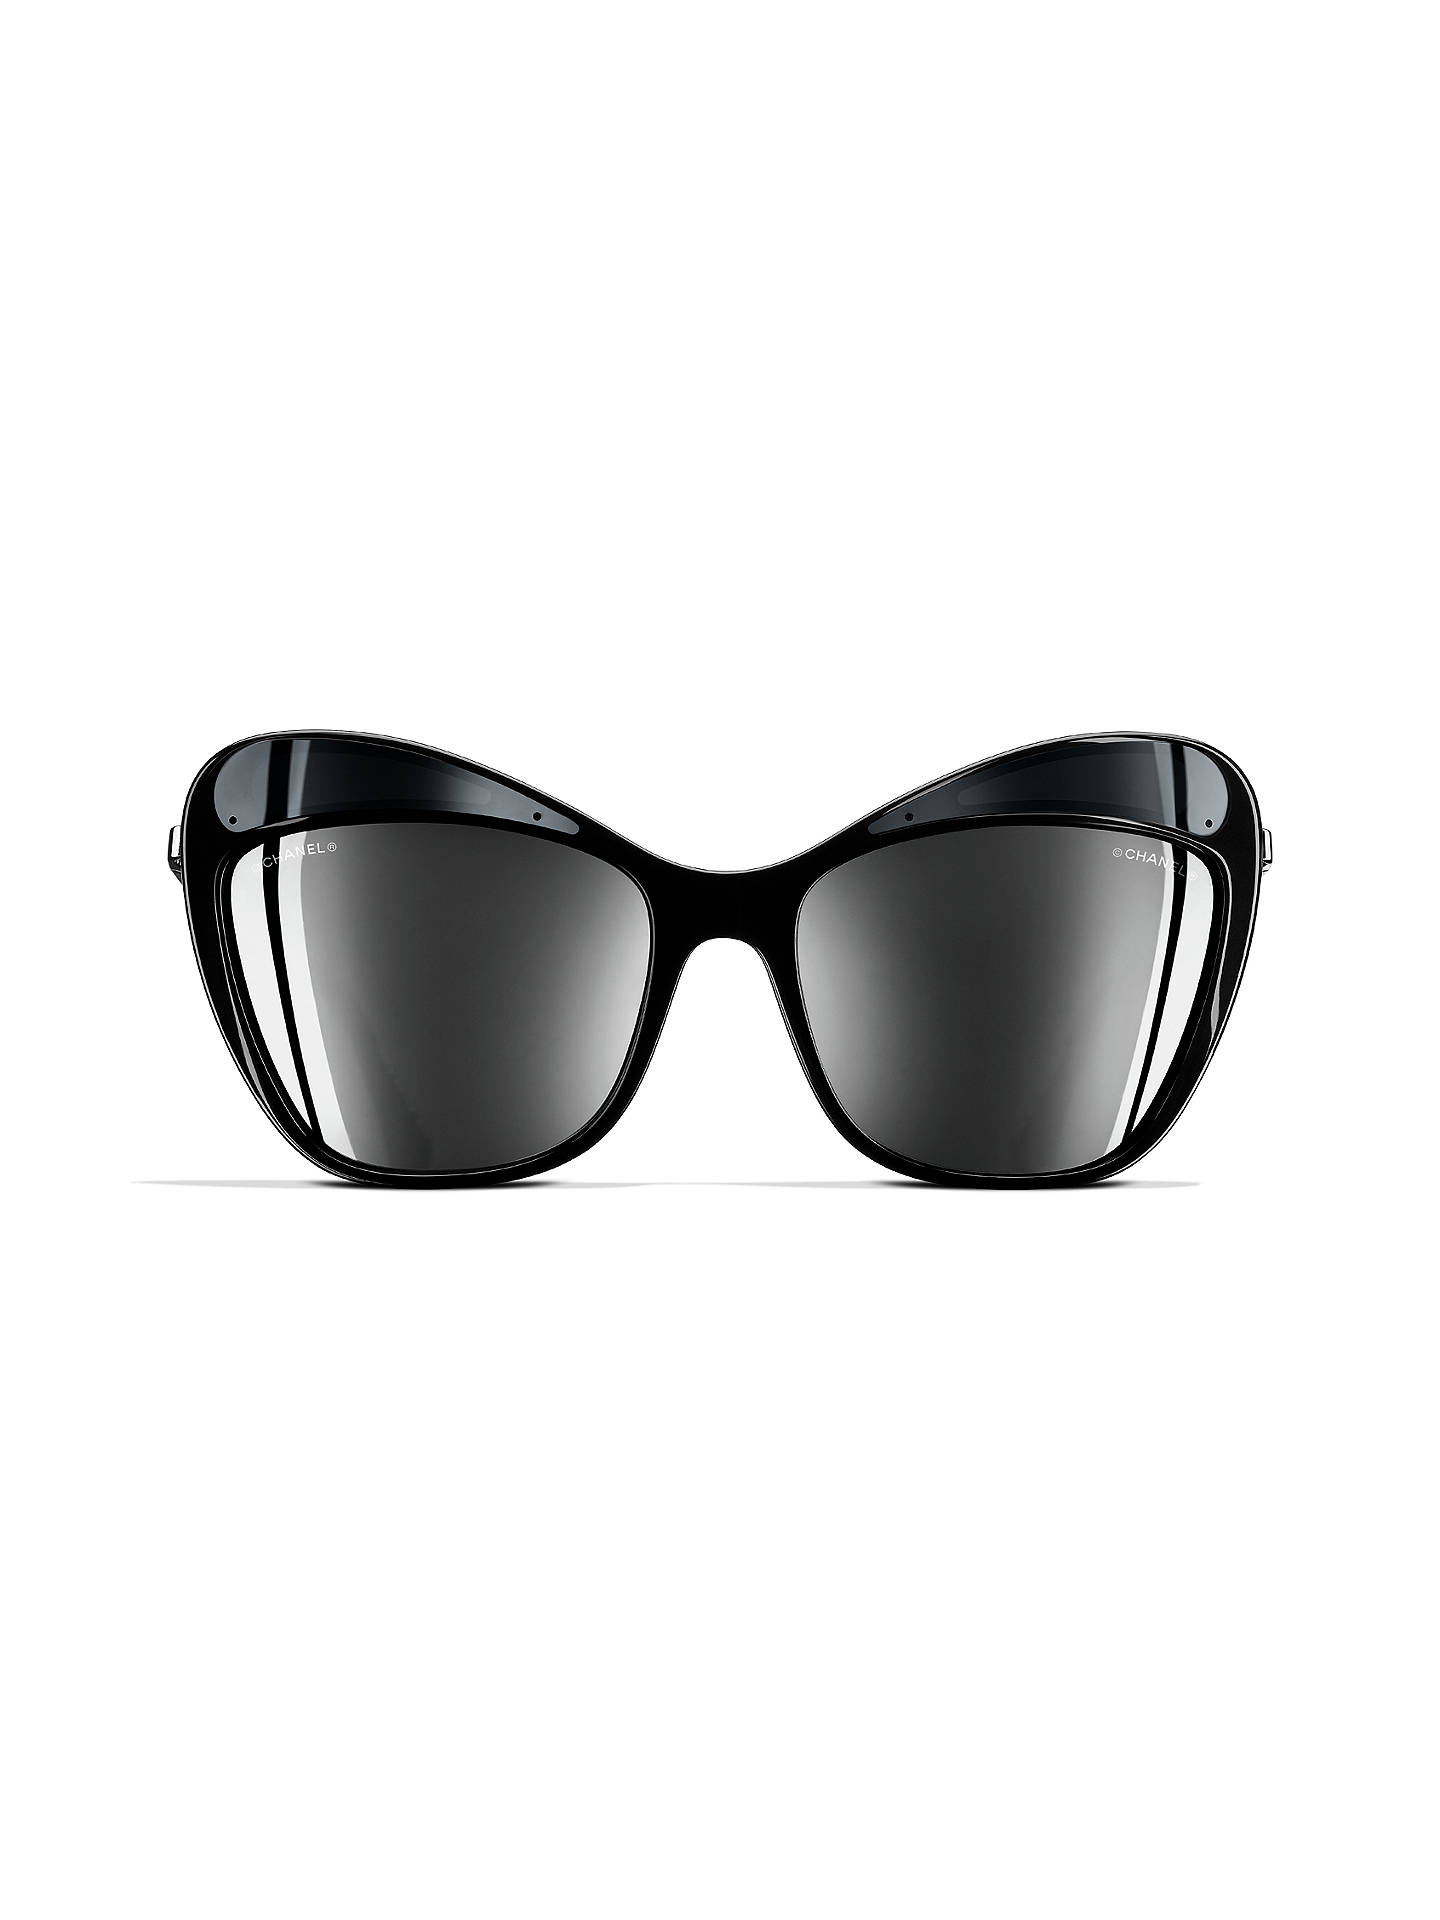 084b53b104 ... BuyCHANEL Butterfly Sunglasses CH5377 Silver Black Online at  johnlewis.com ...